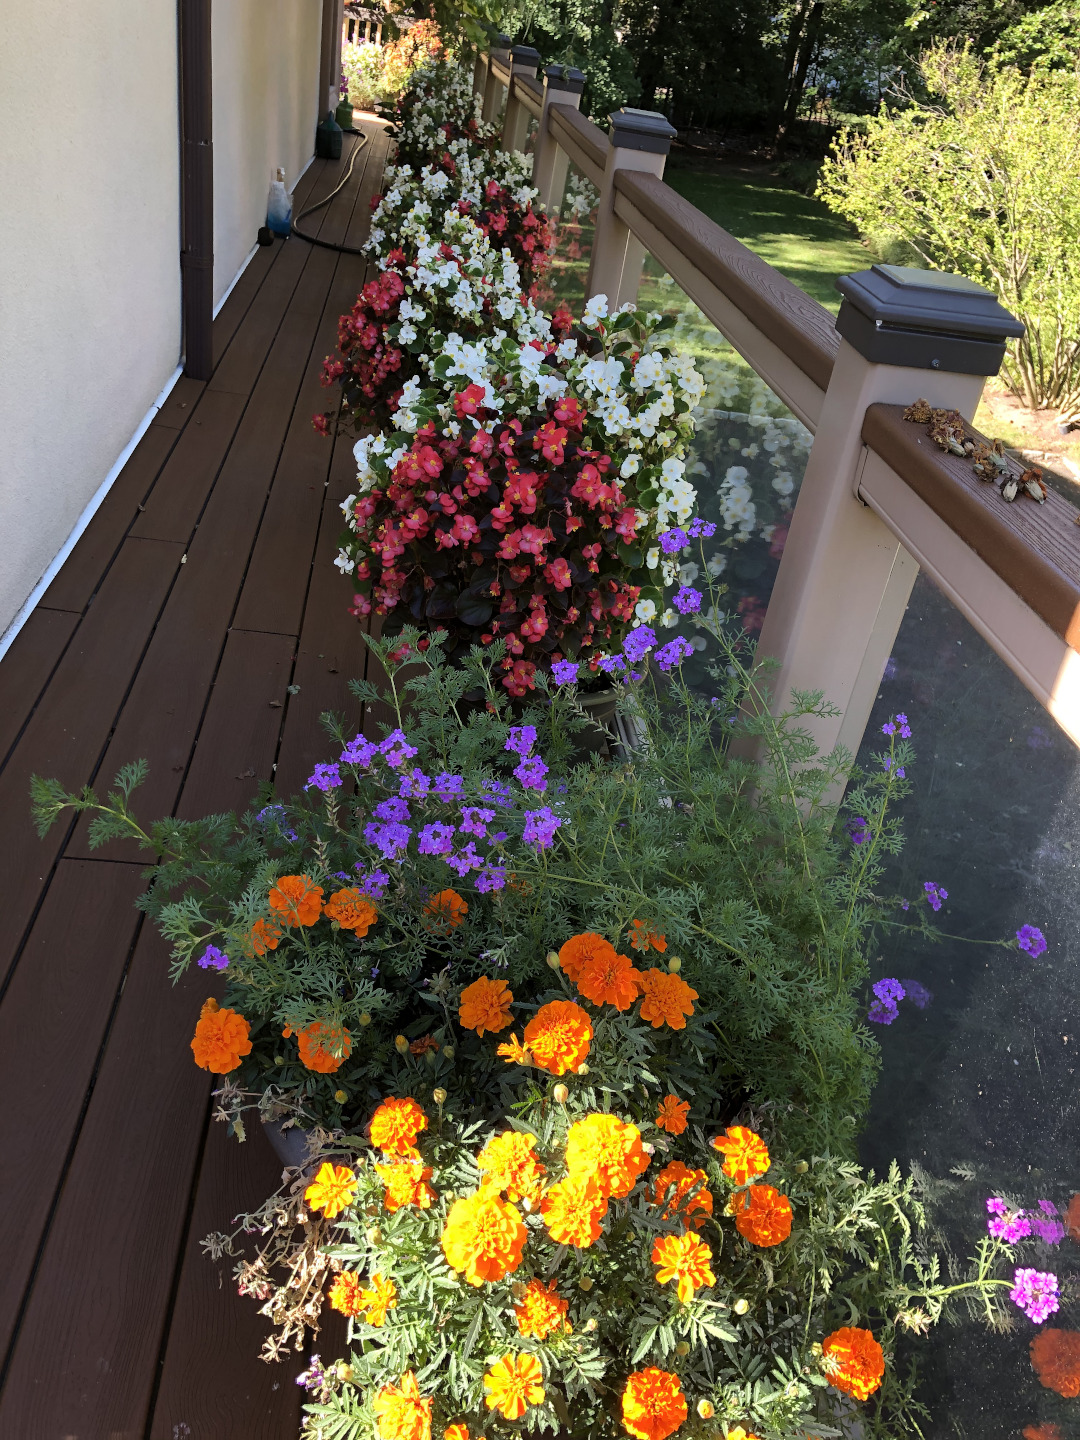 Pots of colorful flowers on a deck